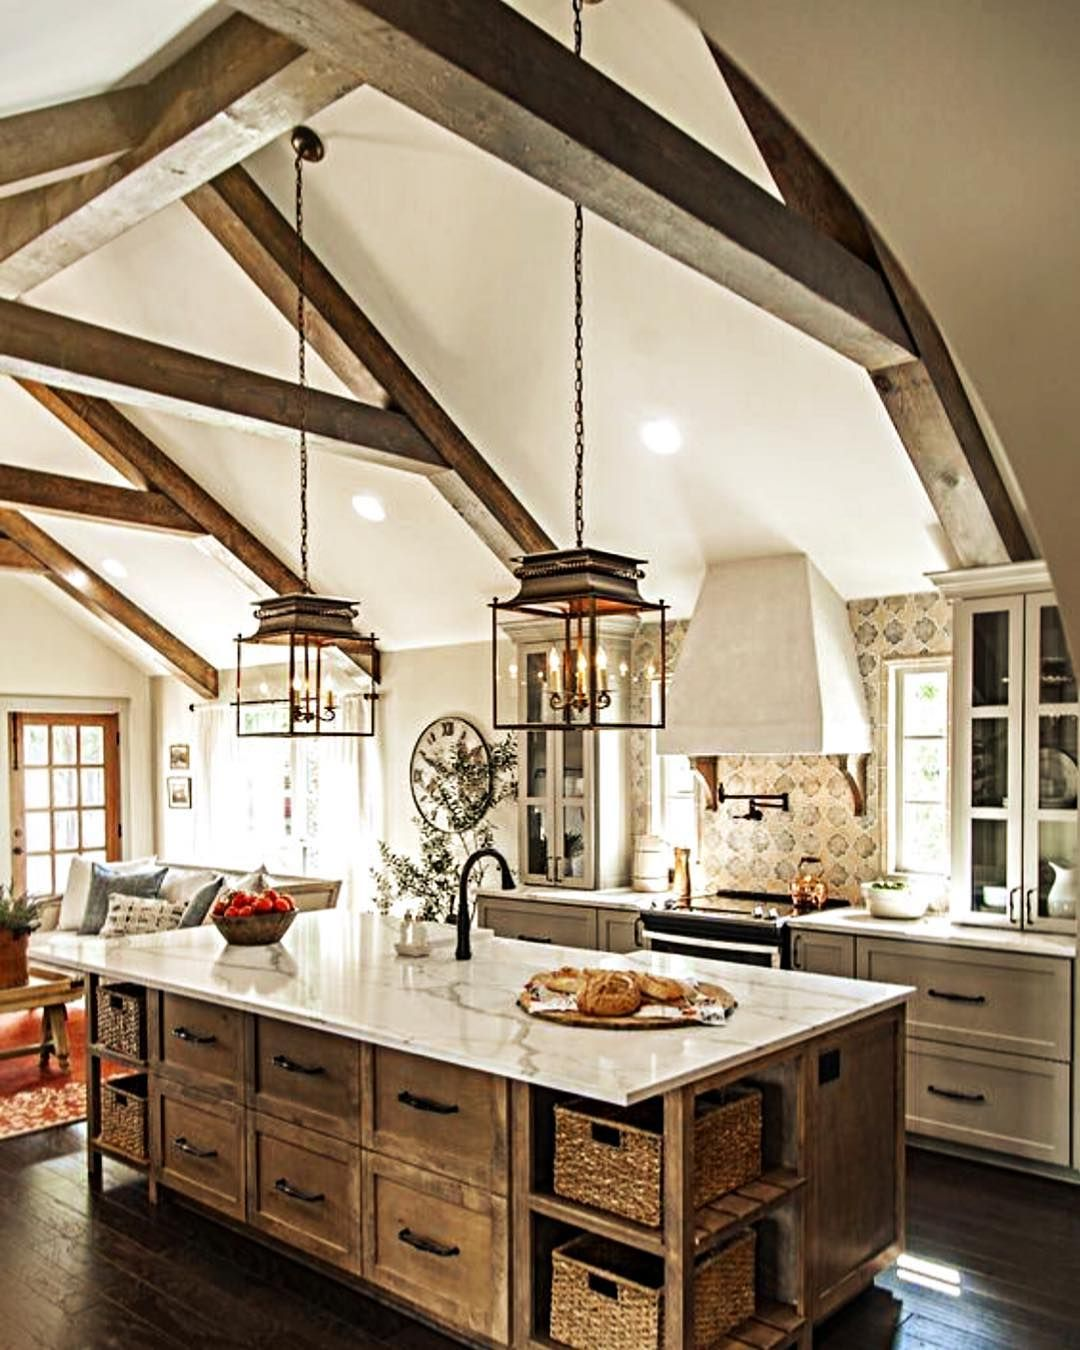 Kitchens Only Beadboard Kitchen Cabinets Lola Moonnlove This Rustic Italian Style With Stunning Raise Ceilings That Adds To The Cozy Charm Of It All Is Via Magnolia